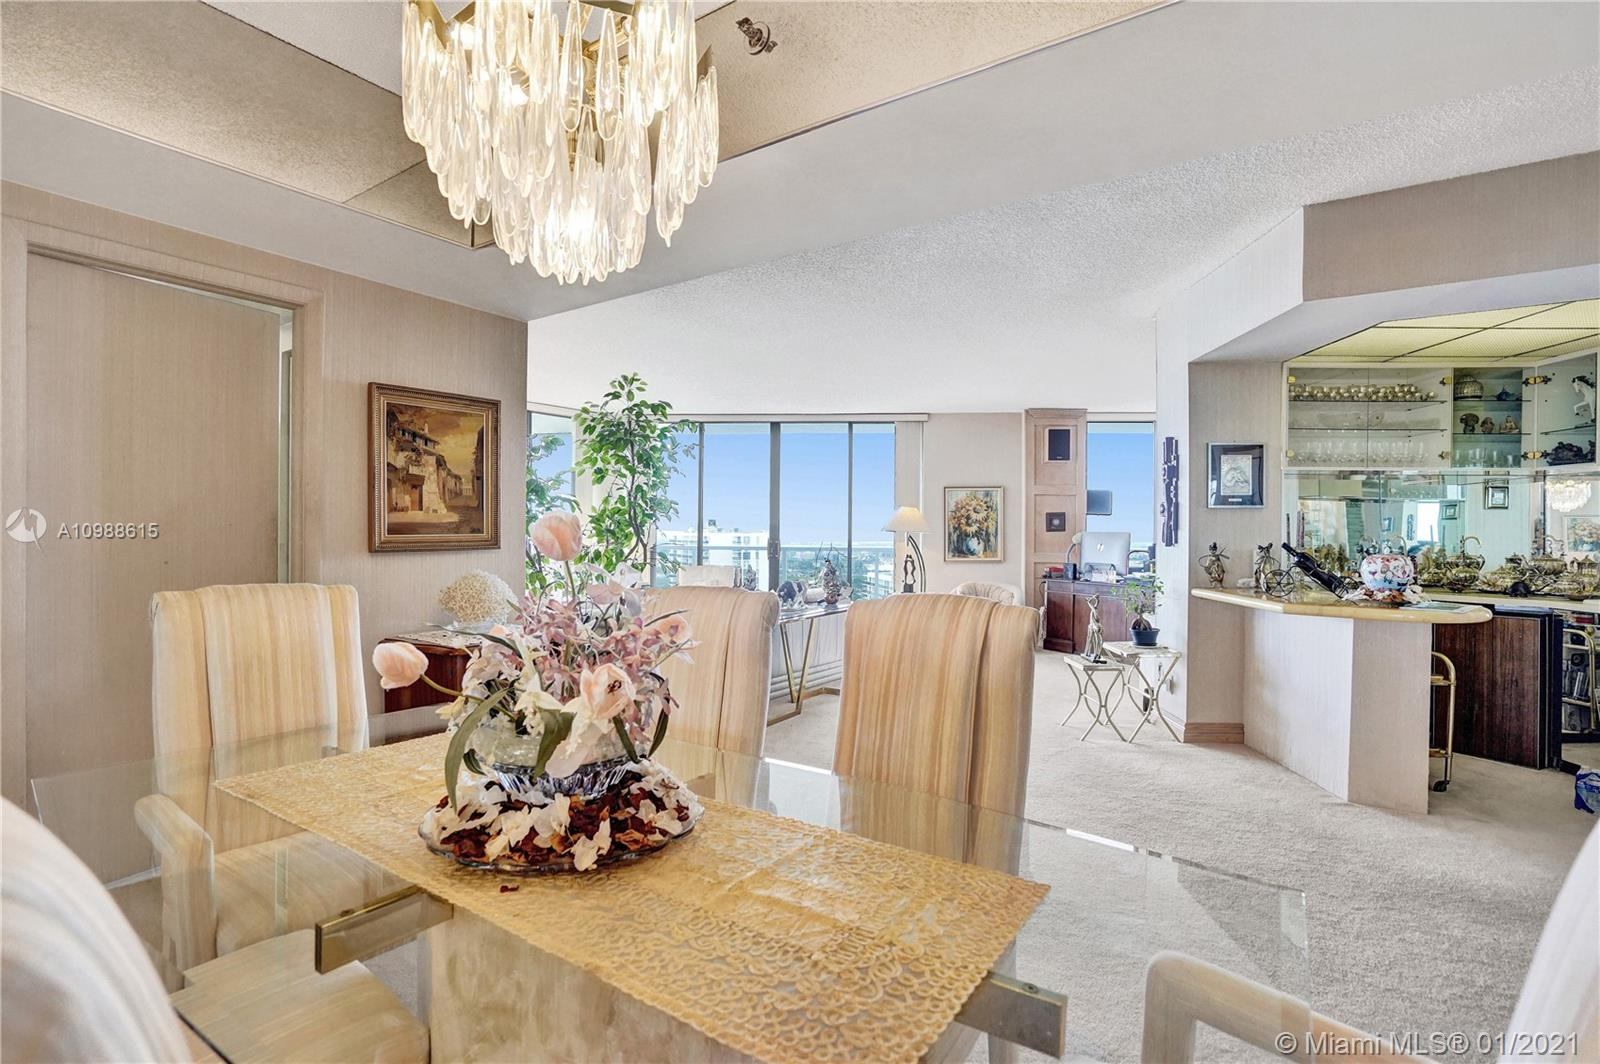 Photo of 20281 Country Club Dr #2407, Aventura, Florida, 33180 - Magnificent golf course views.